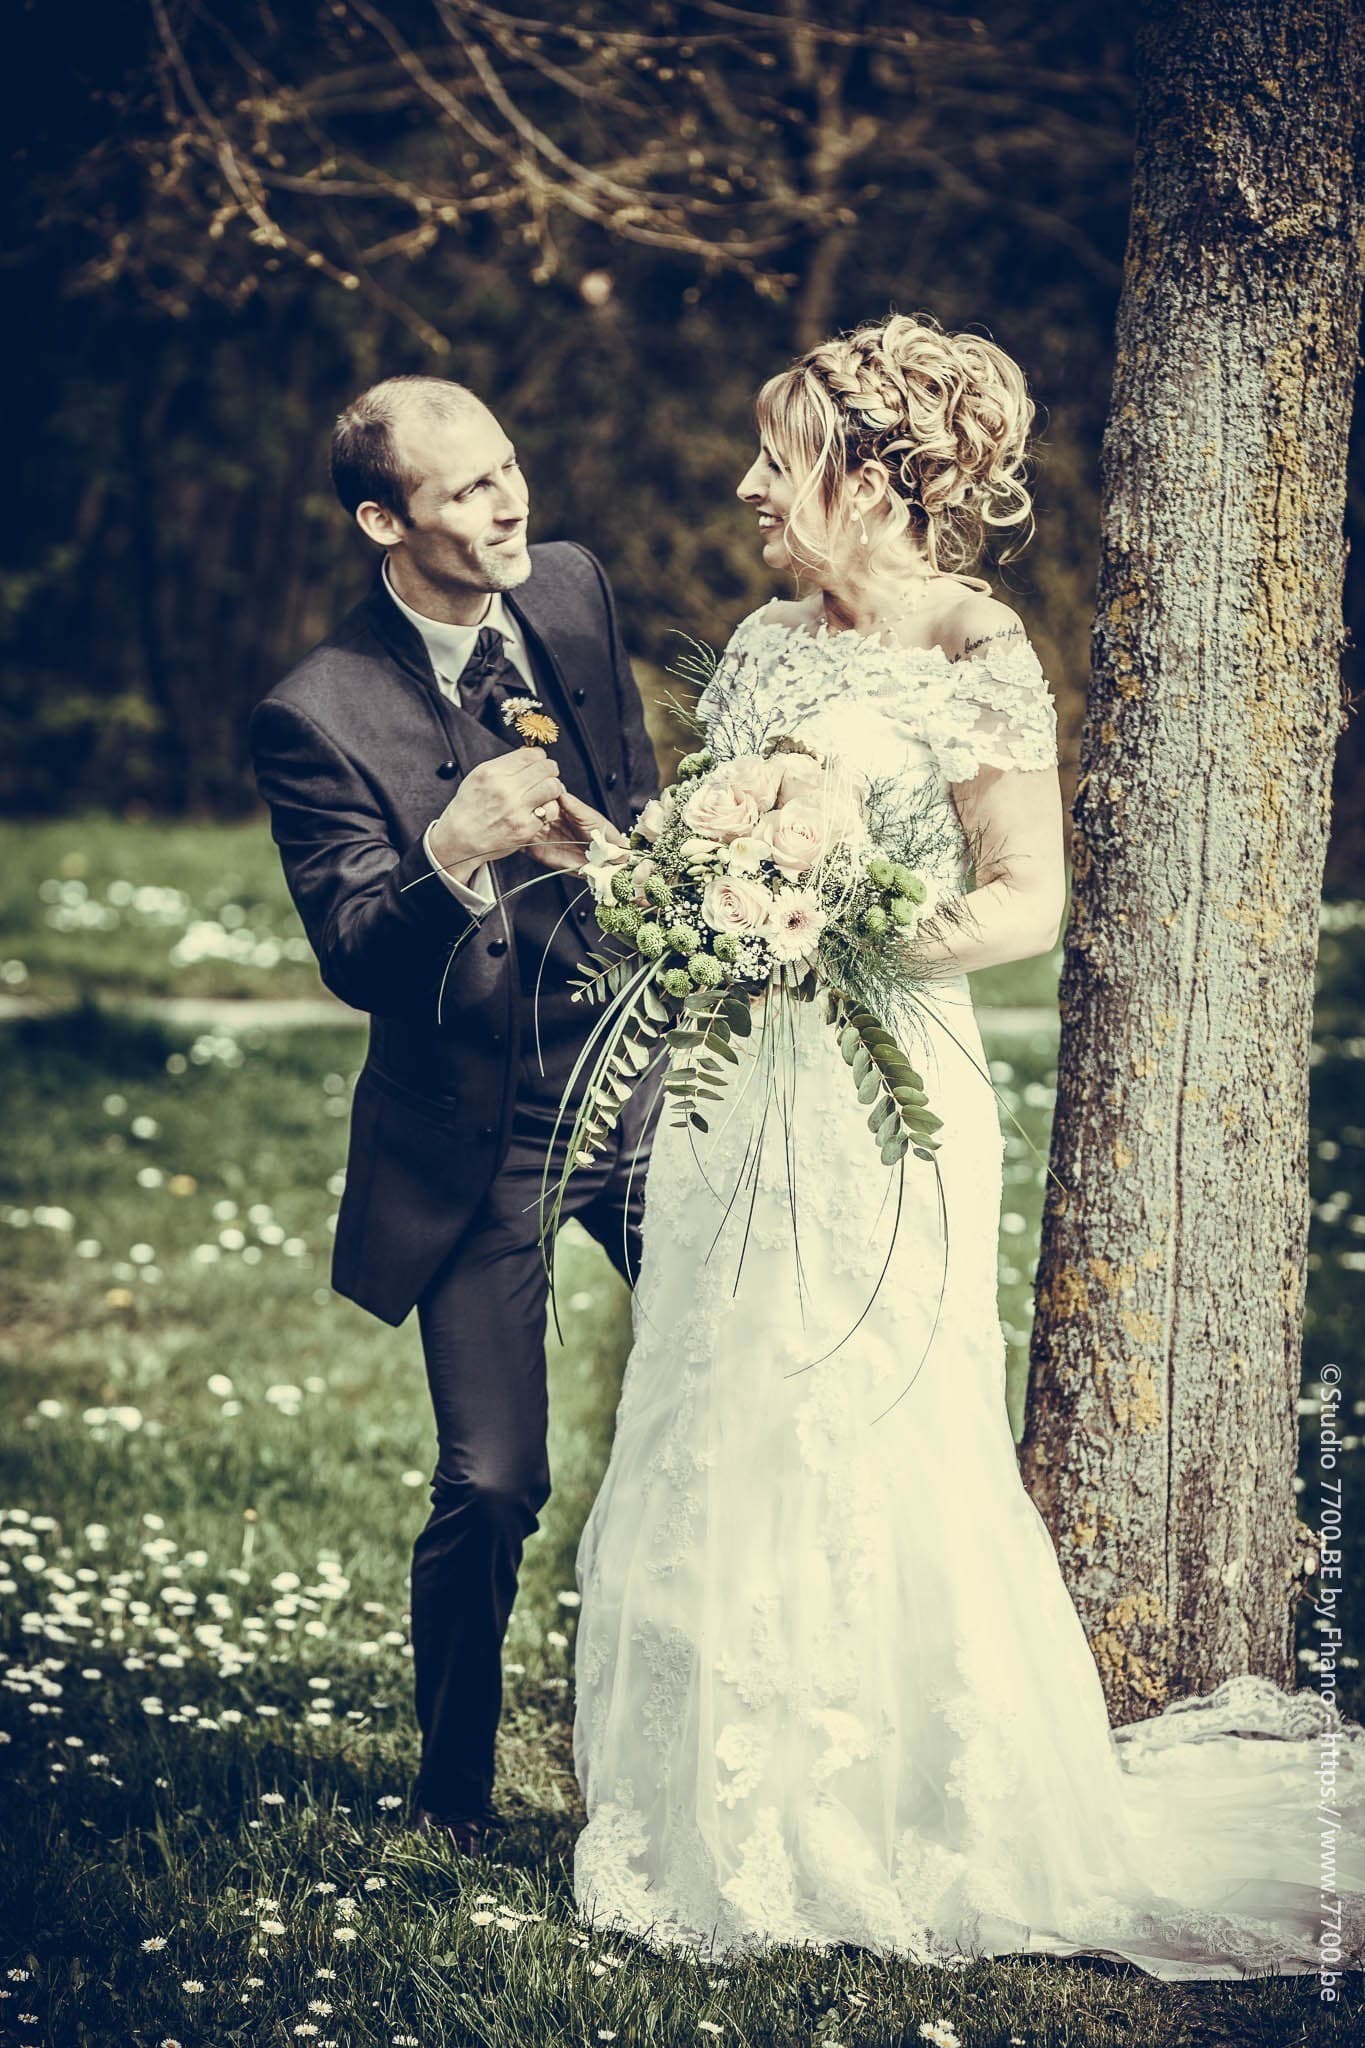 Les photos du mariage de Catherine et Stéphane prisent par le STUDIO 7700.BE by Fhano https://www.7700.be